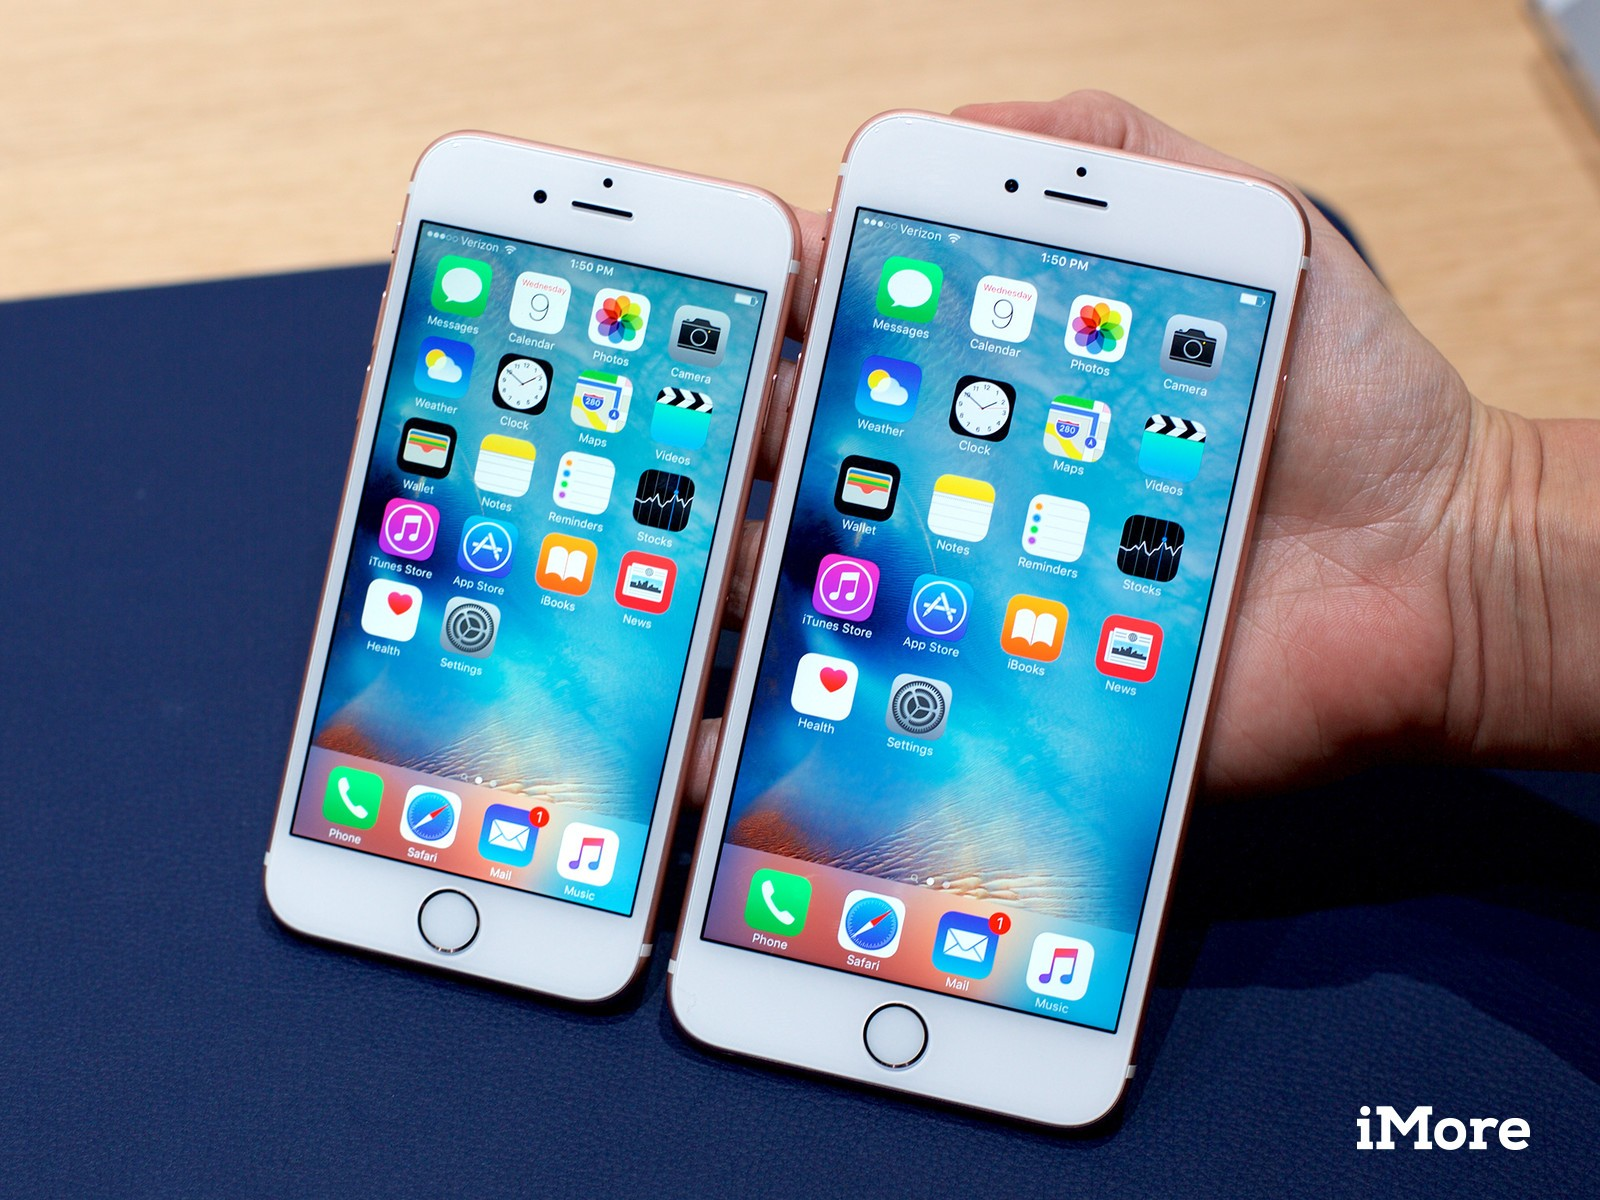 How To The Iphone 6s And Plus In Canada